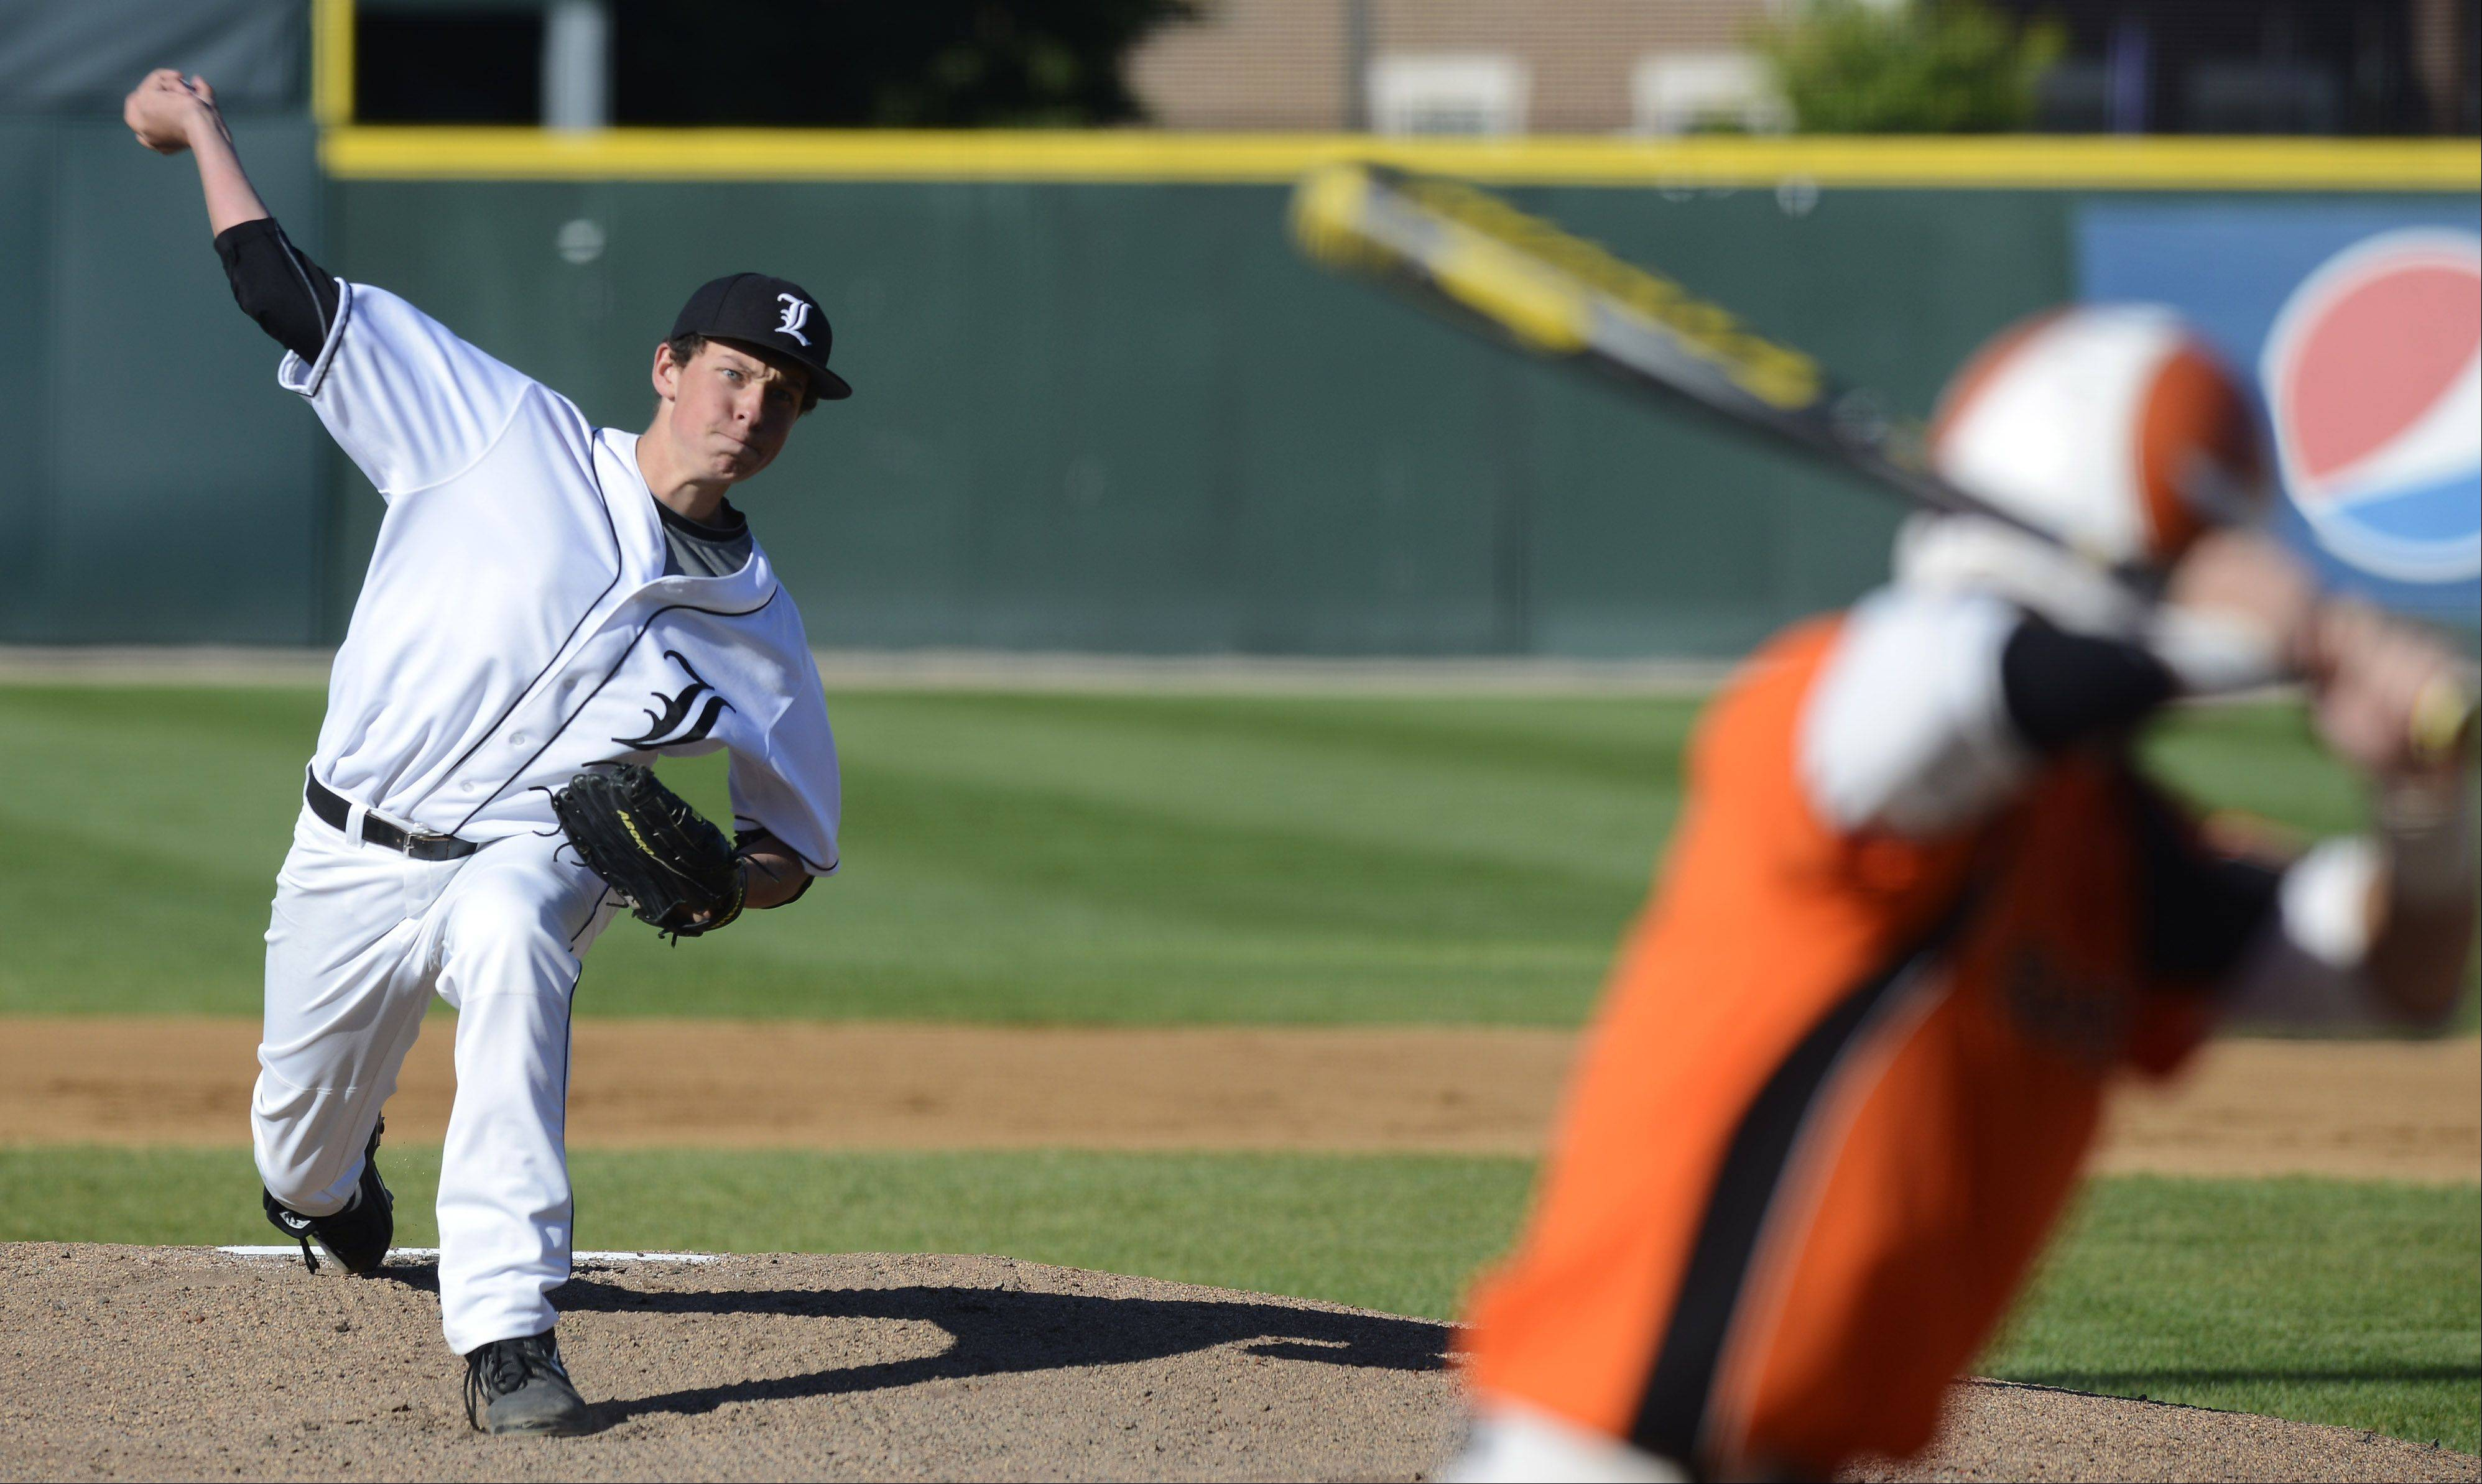 Libertyville pitcher Jeff Barton delivers.